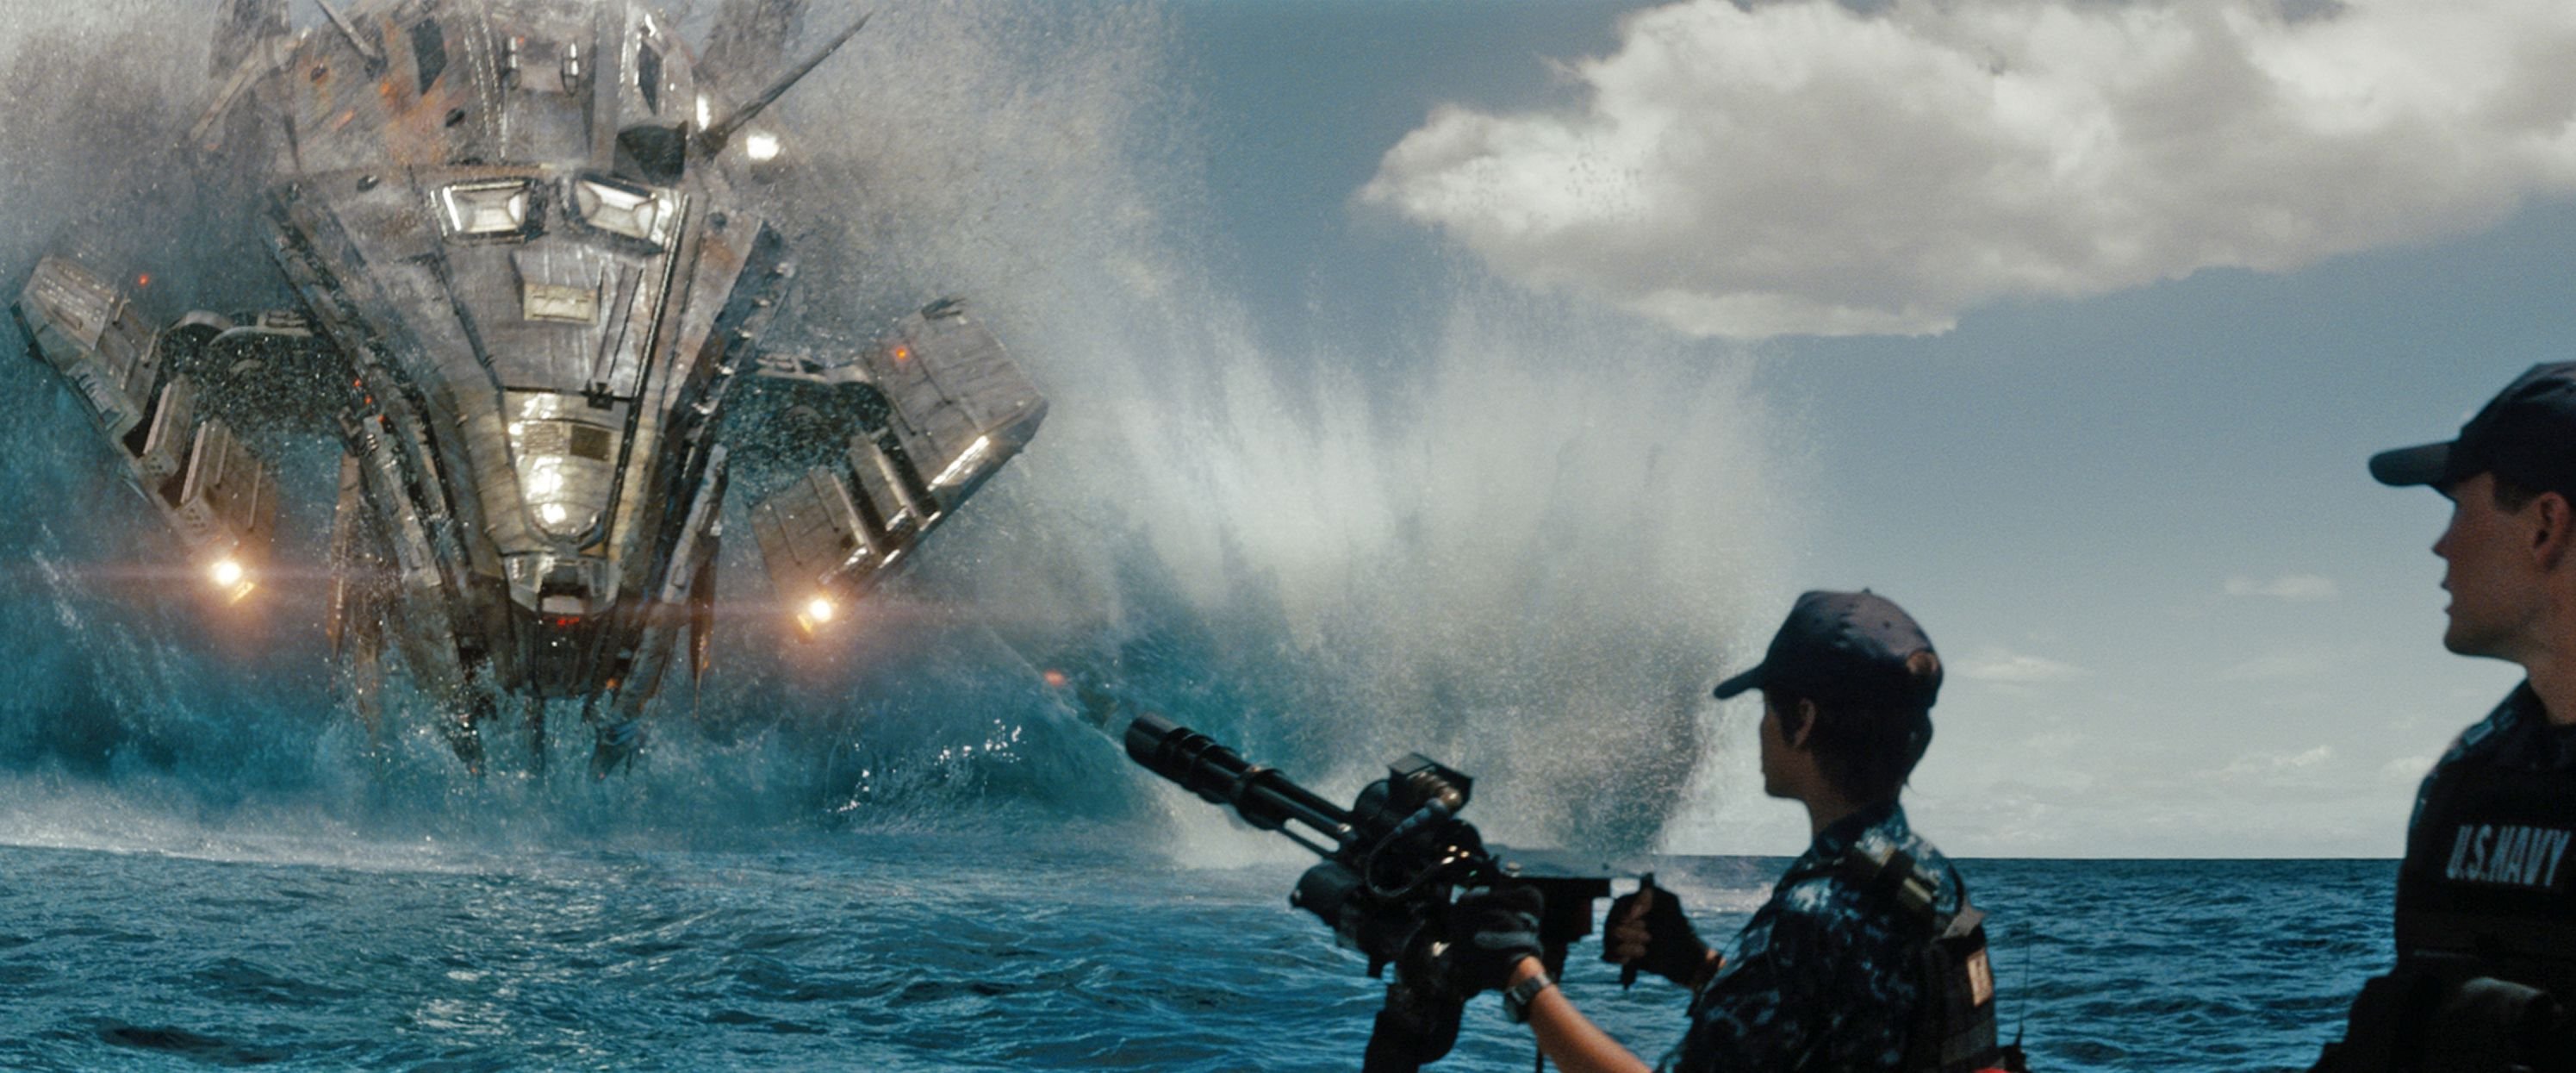 An image from Battleship